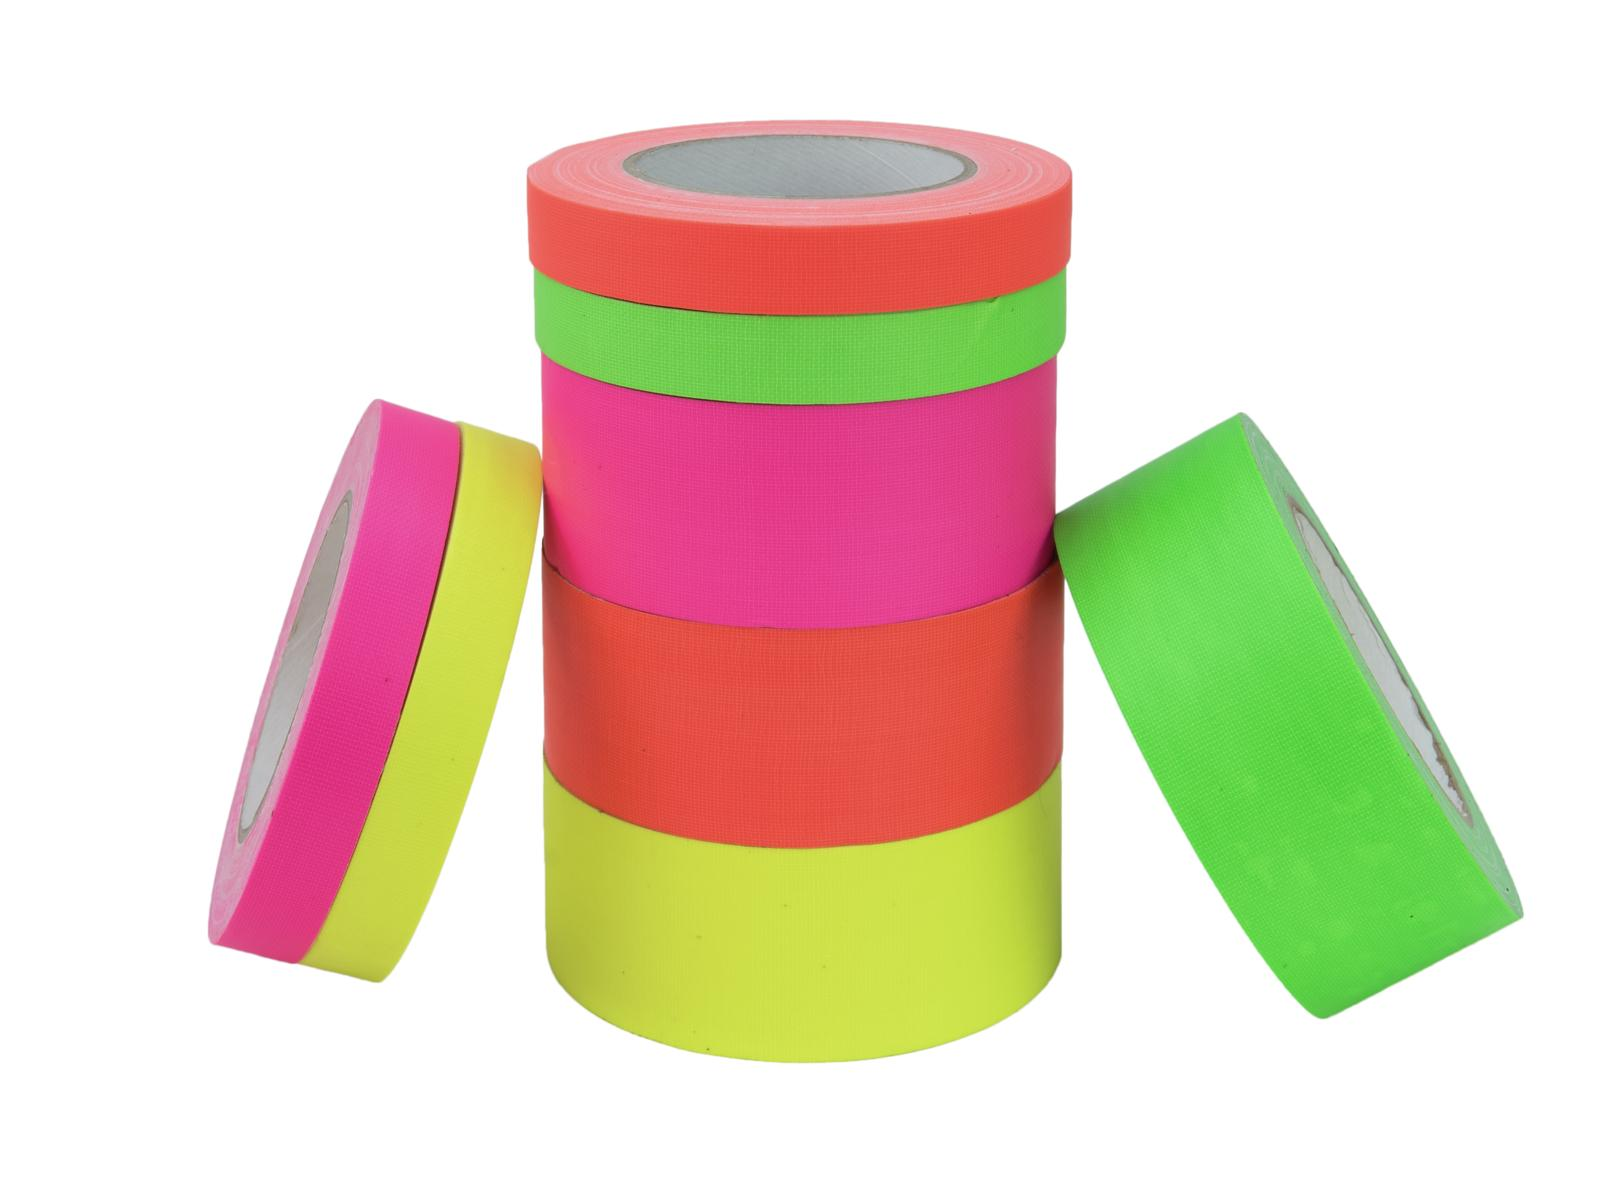 ACCESSORIO ai gaffa Tape 19mm x 25m neon-verde uv active